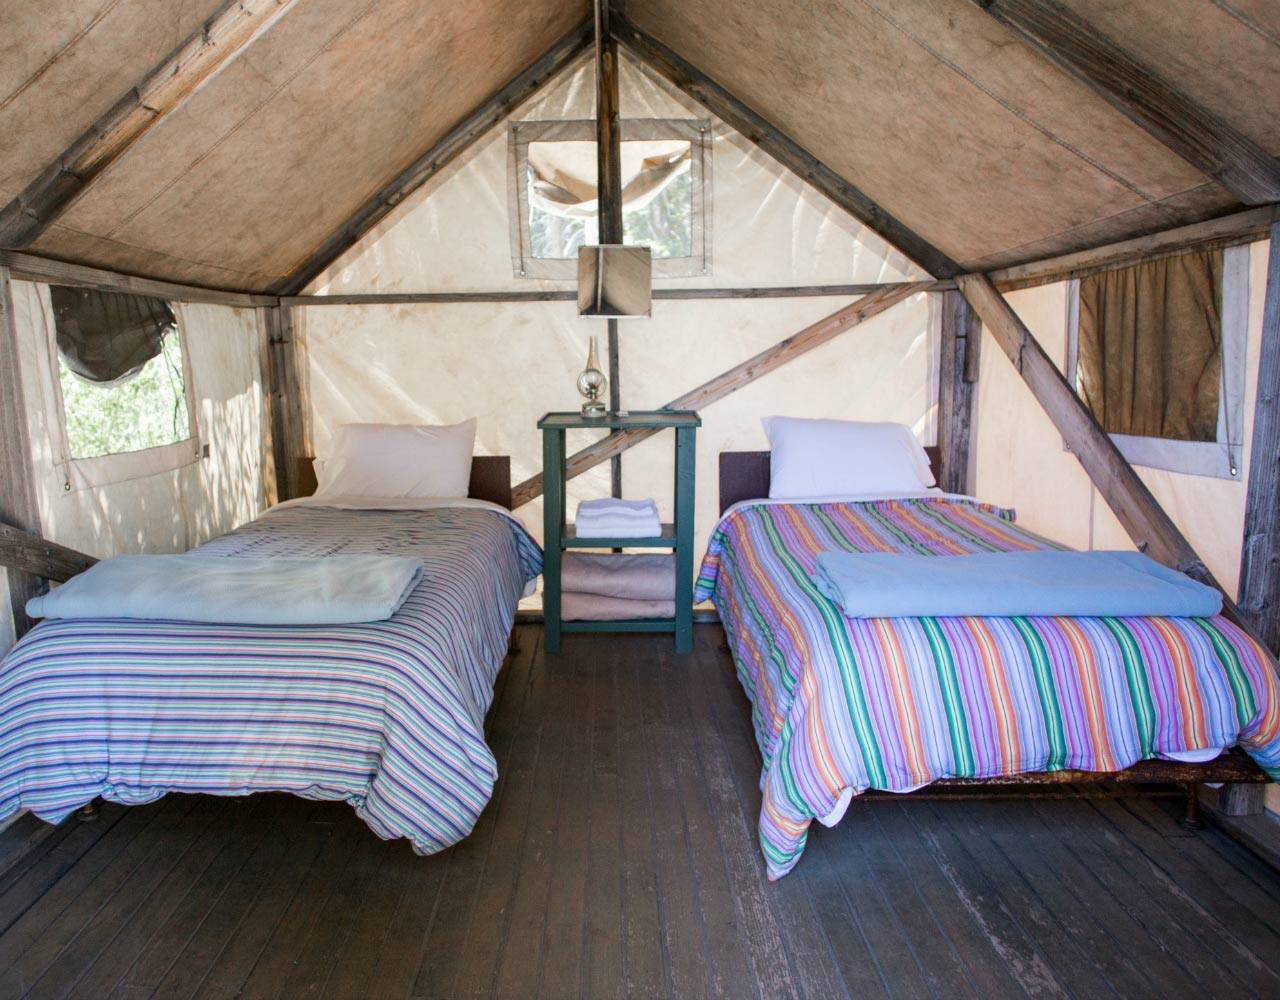 Bearpaw Tent Cabin Interior. Reservations for Bearpaw High Sierra ... & Bearpaw High Sierra Camp | Sequoia u0026 Kings Canyon Natu0027l Park